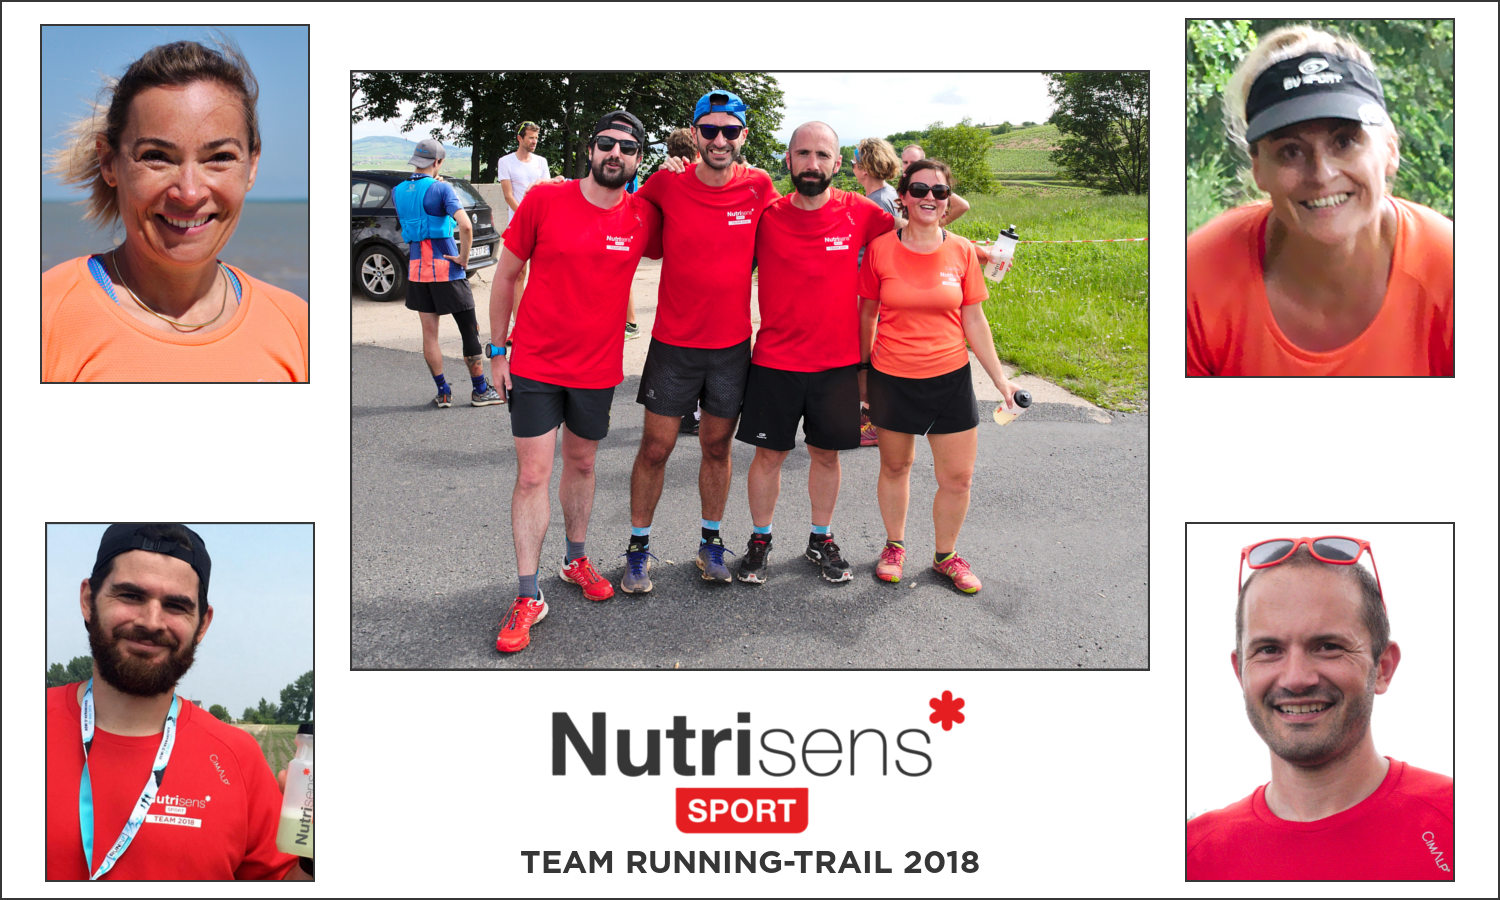 Team Running-Trail Nutrisens Sport 2018